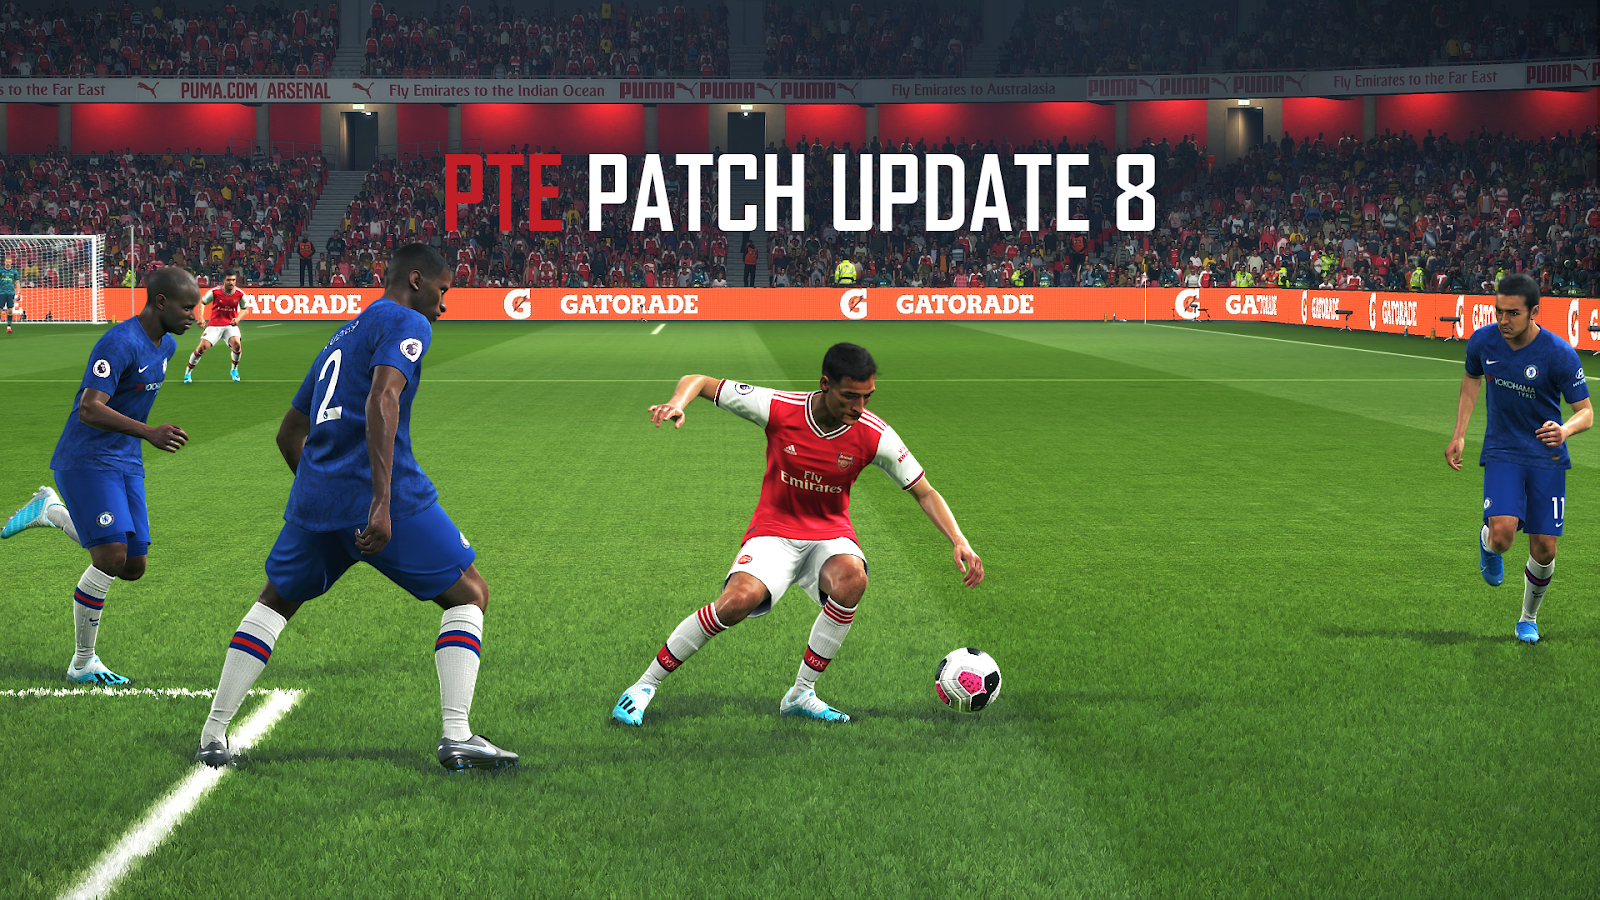 PES 2019 PTE Patch 2019 Unofficial Update 8 by Ziyech 2304